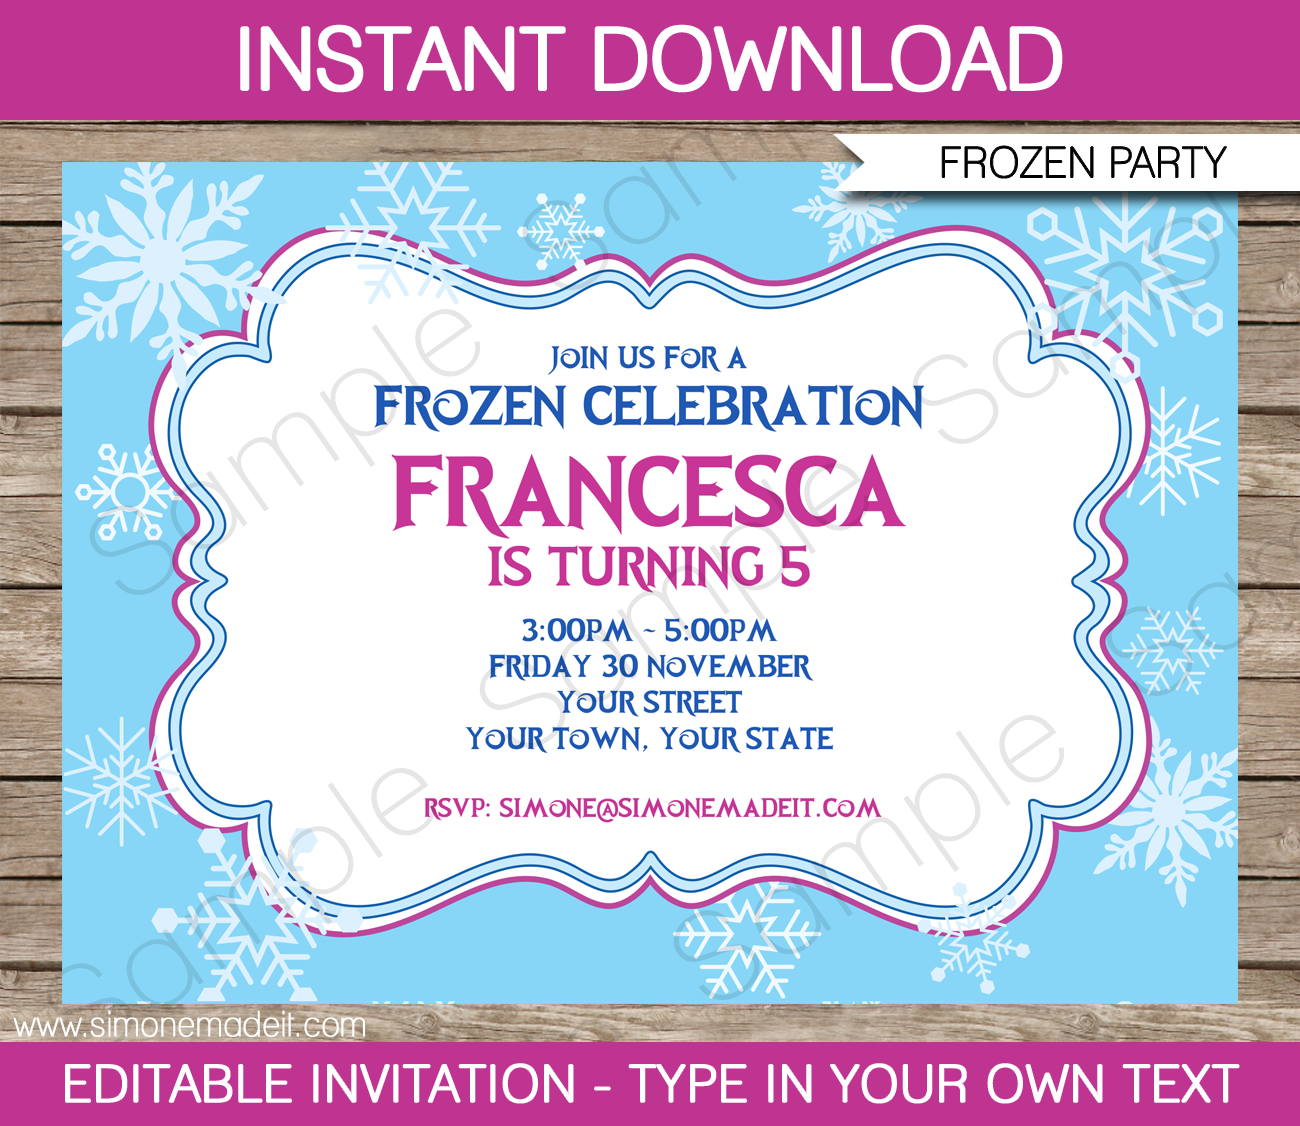 Frozen invitation template diy editable frozen invitations frozen invitation template birthday party editable diy theme template instant download 750 via filmwisefo Images